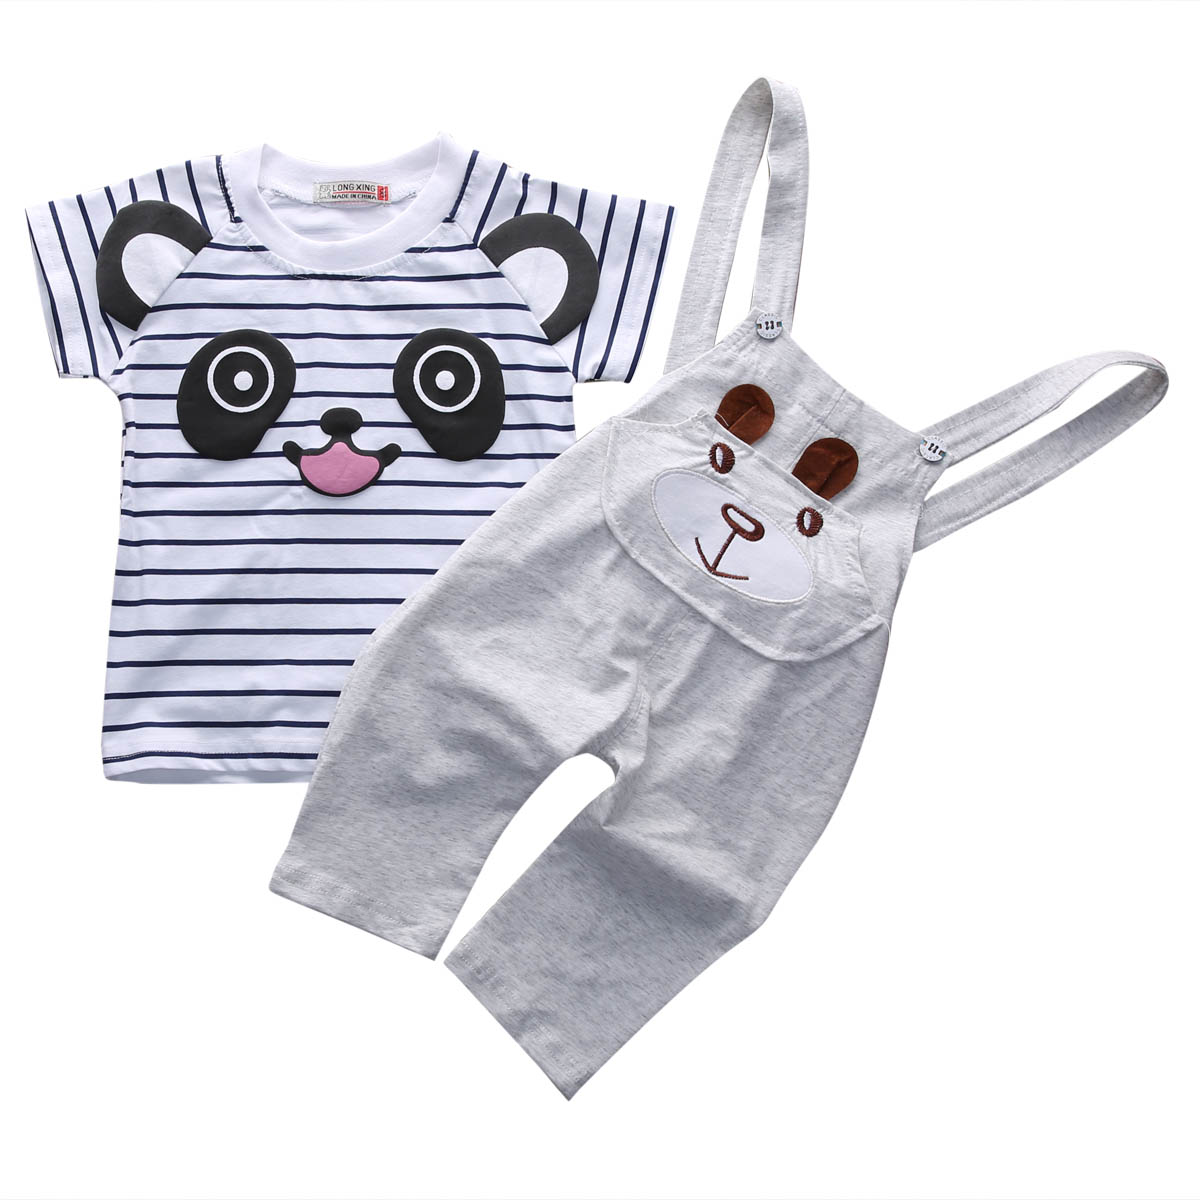 Cute 2PCS Newborn Kids Baby Boy Girls T-shirt Tops+Pants Overalls Outfits Clothes Set Summer Striped Tees Clothing summer baby boy clothes set cotton short sleeved mickey t shirt striped pants 2pcs newborn baby girl clothing set sport suits